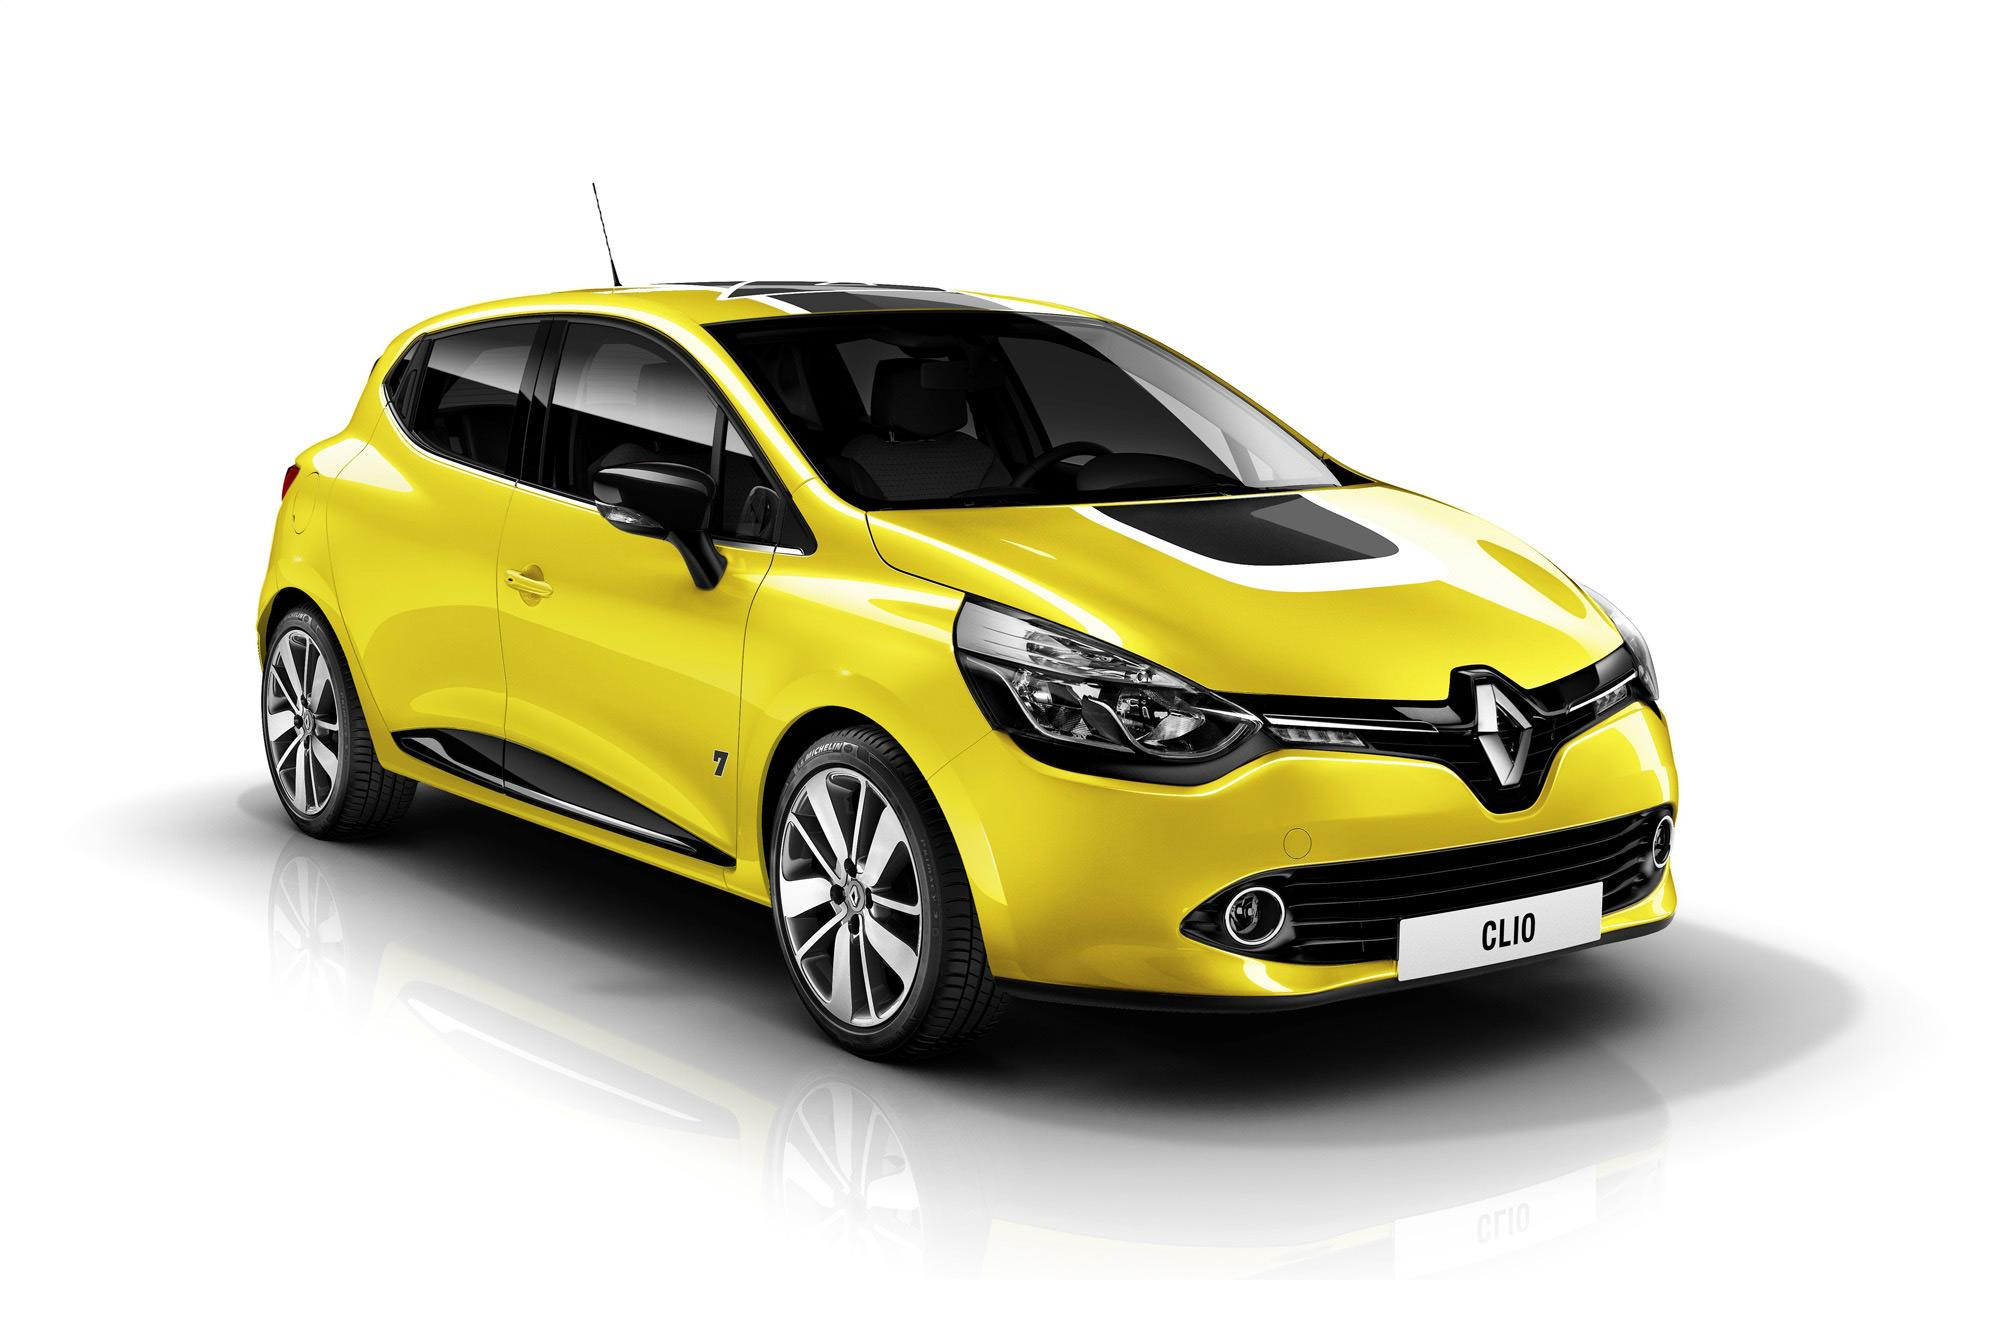 renault images renault clio hd wallpaper and background photos 31364093. Black Bedroom Furniture Sets. Home Design Ideas